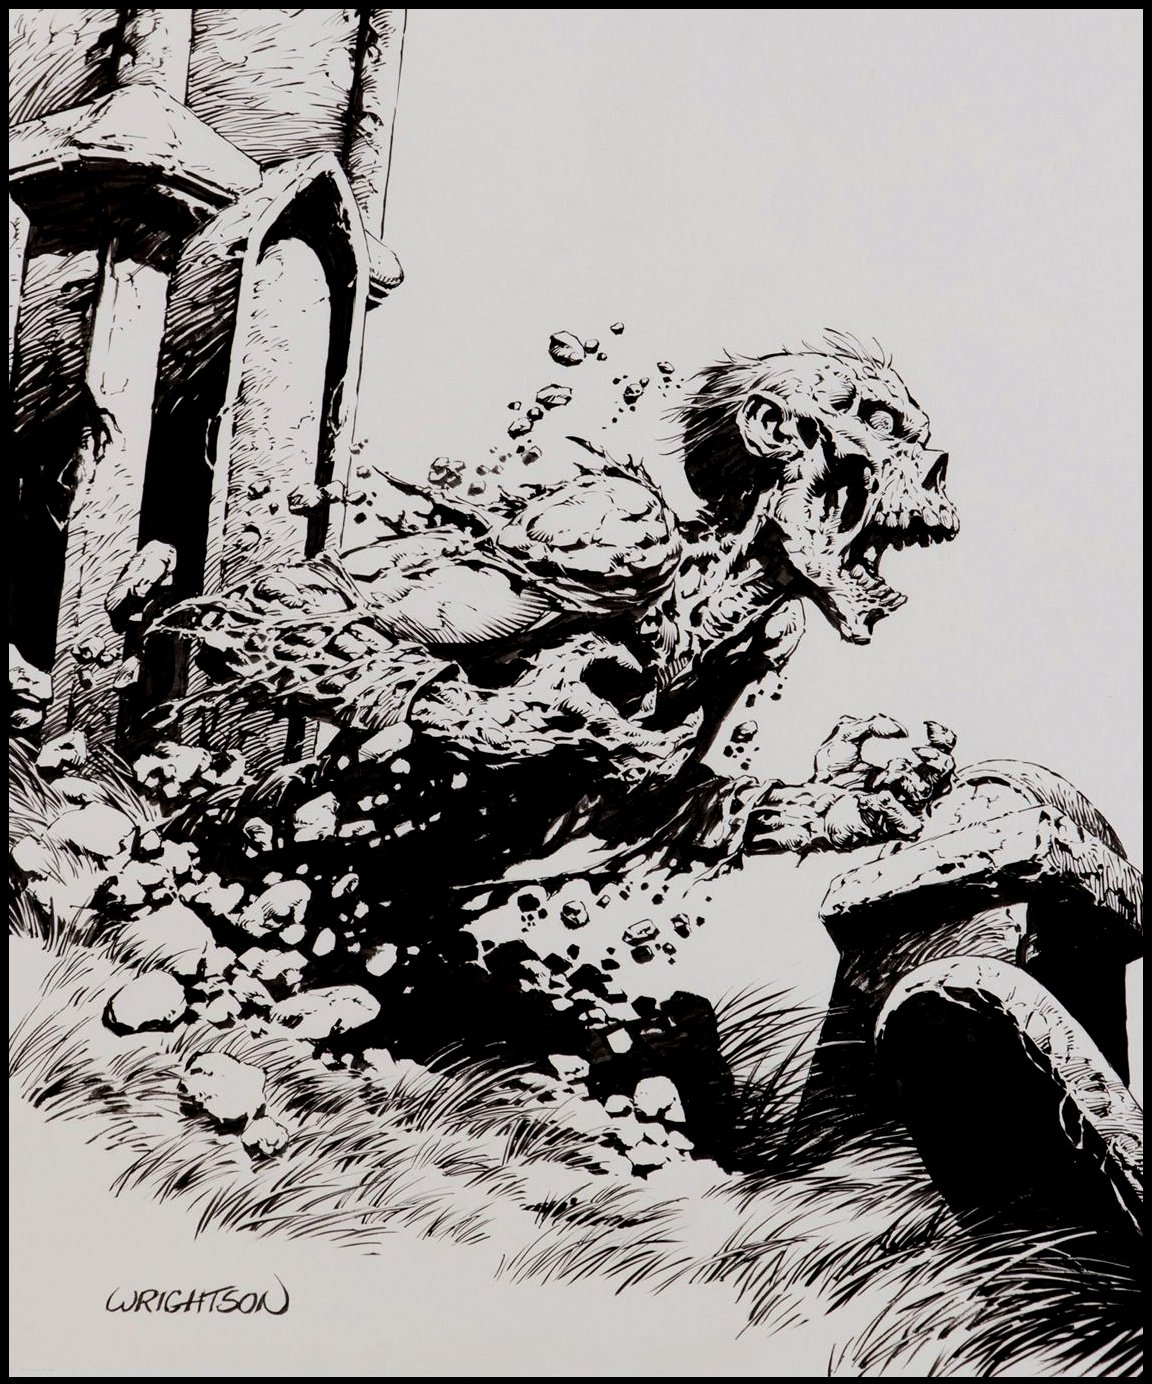 Published Large Zombie Image For T-Shirt Design & Wrightson's Personal Twitter Page!